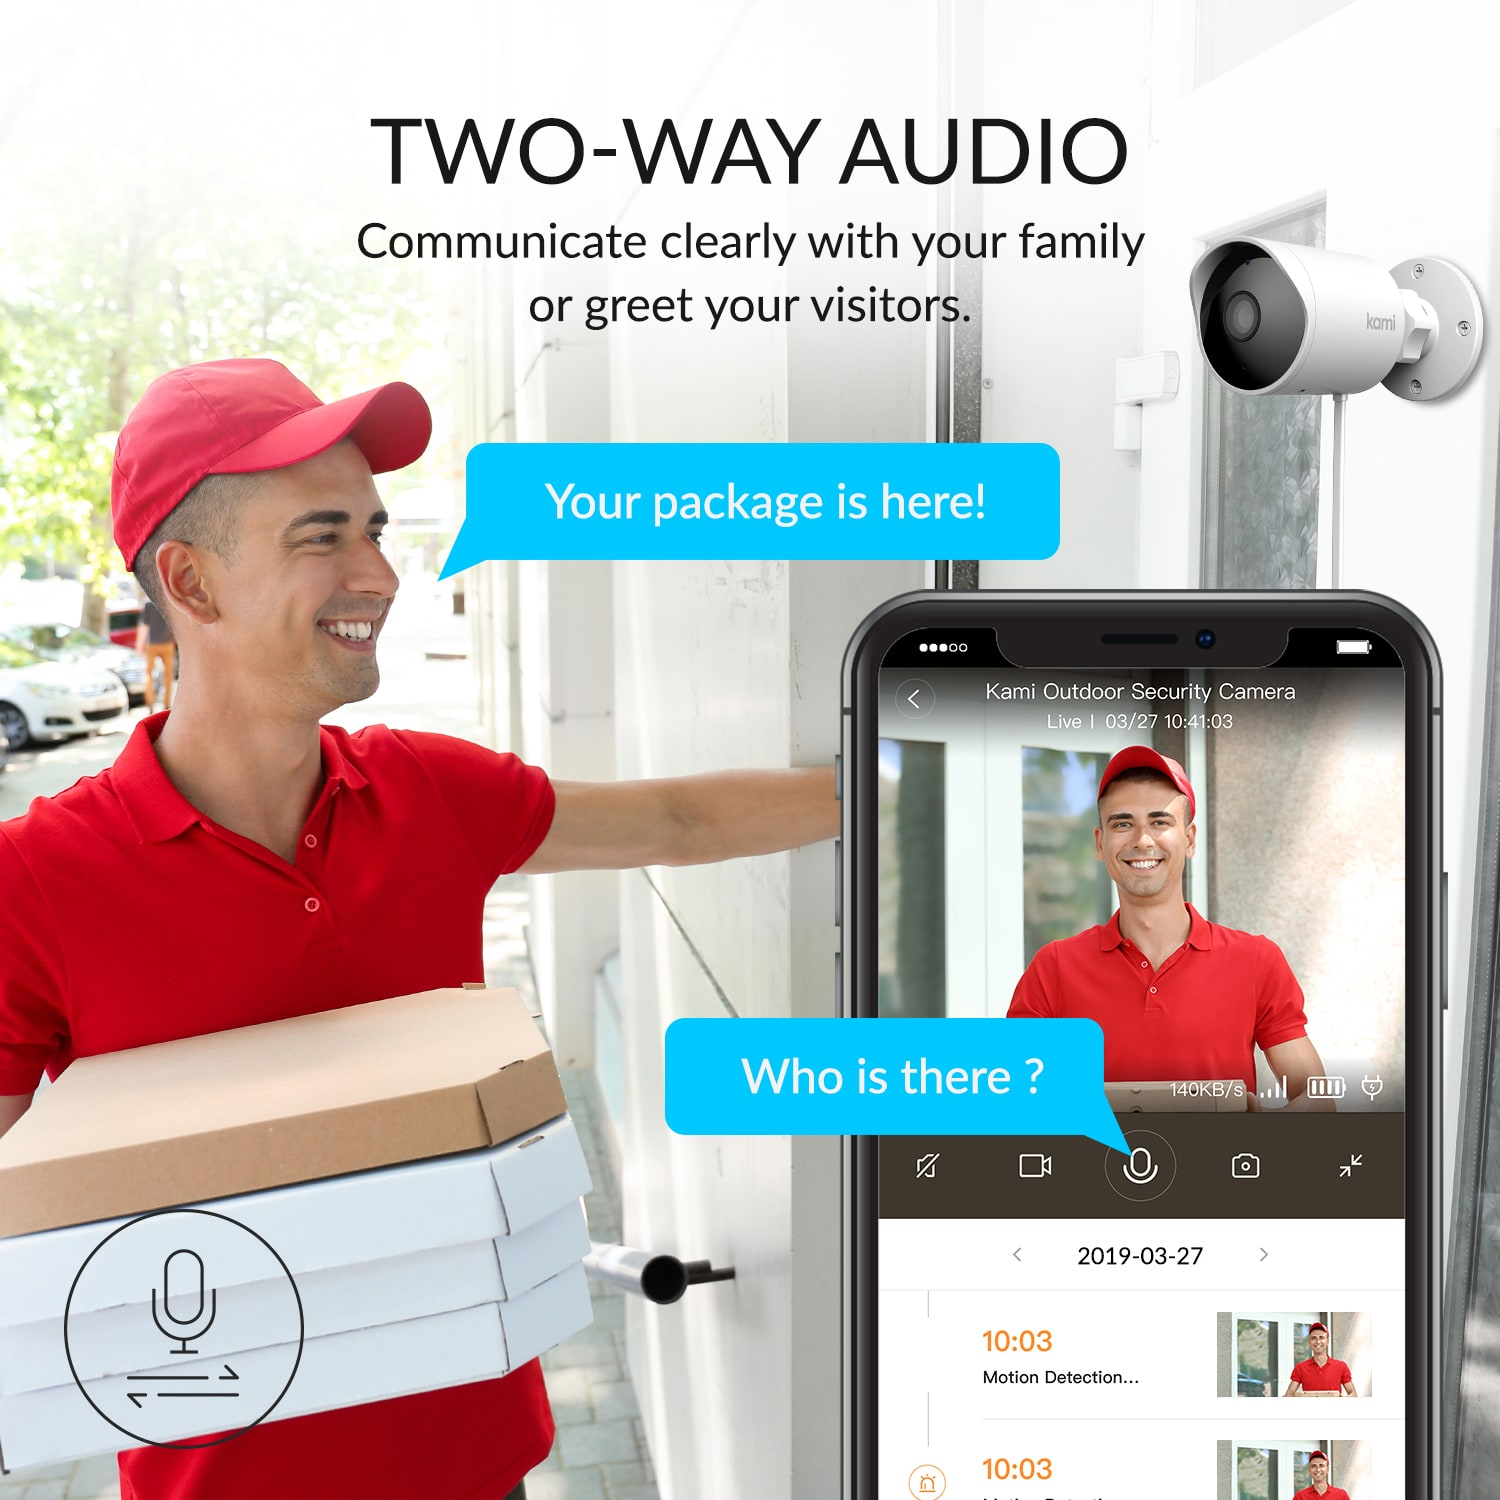 Two-way Audio - Communicate clearly with your family and greet your visitors